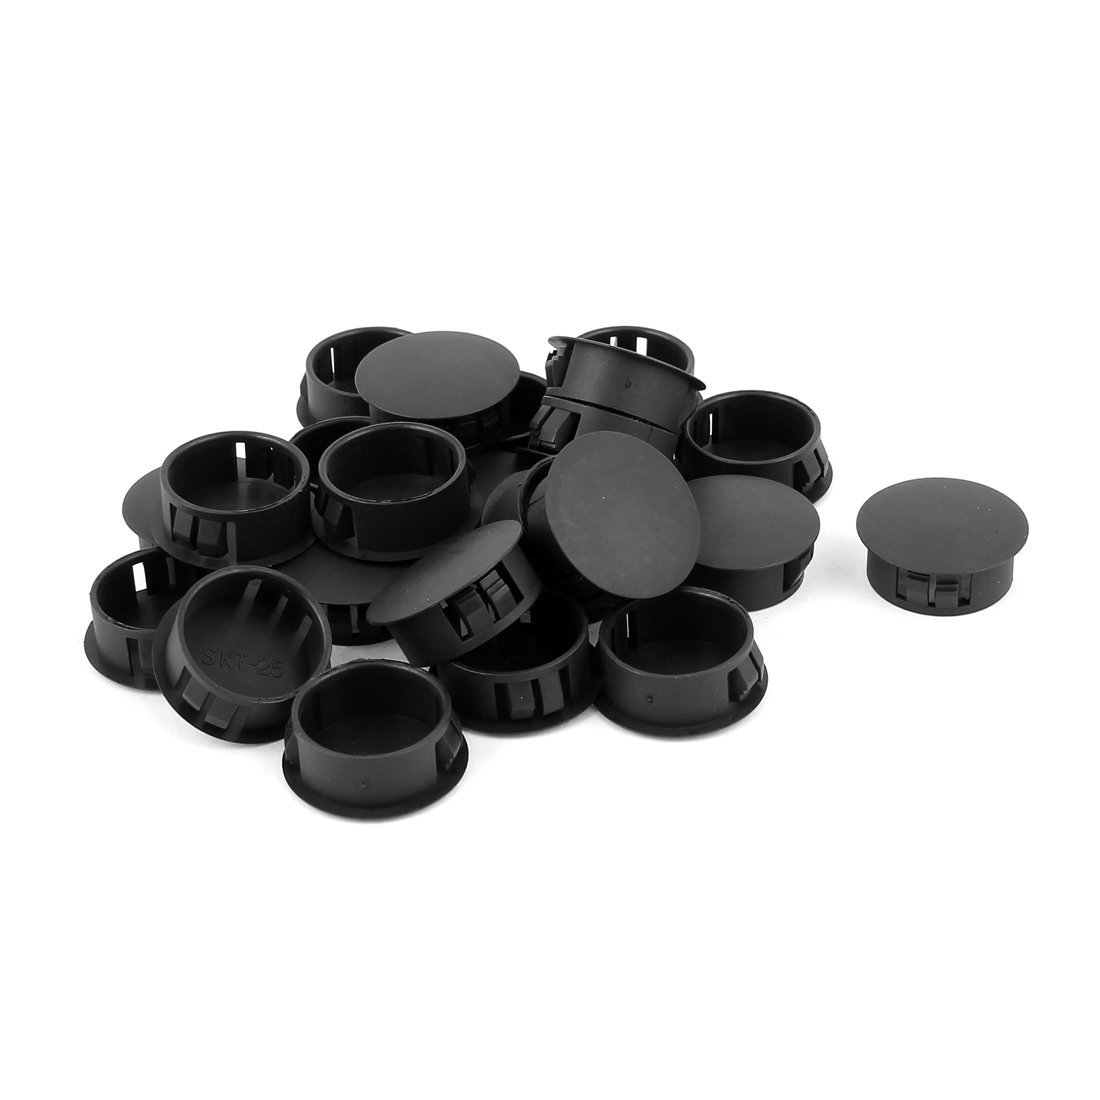 50 Pcs SKT-25 25mm Insulated Black Plastic Snap in Mount Domed Blank Lock Hole Cover Harness Fastener by MAJIAWEI (Image #1)